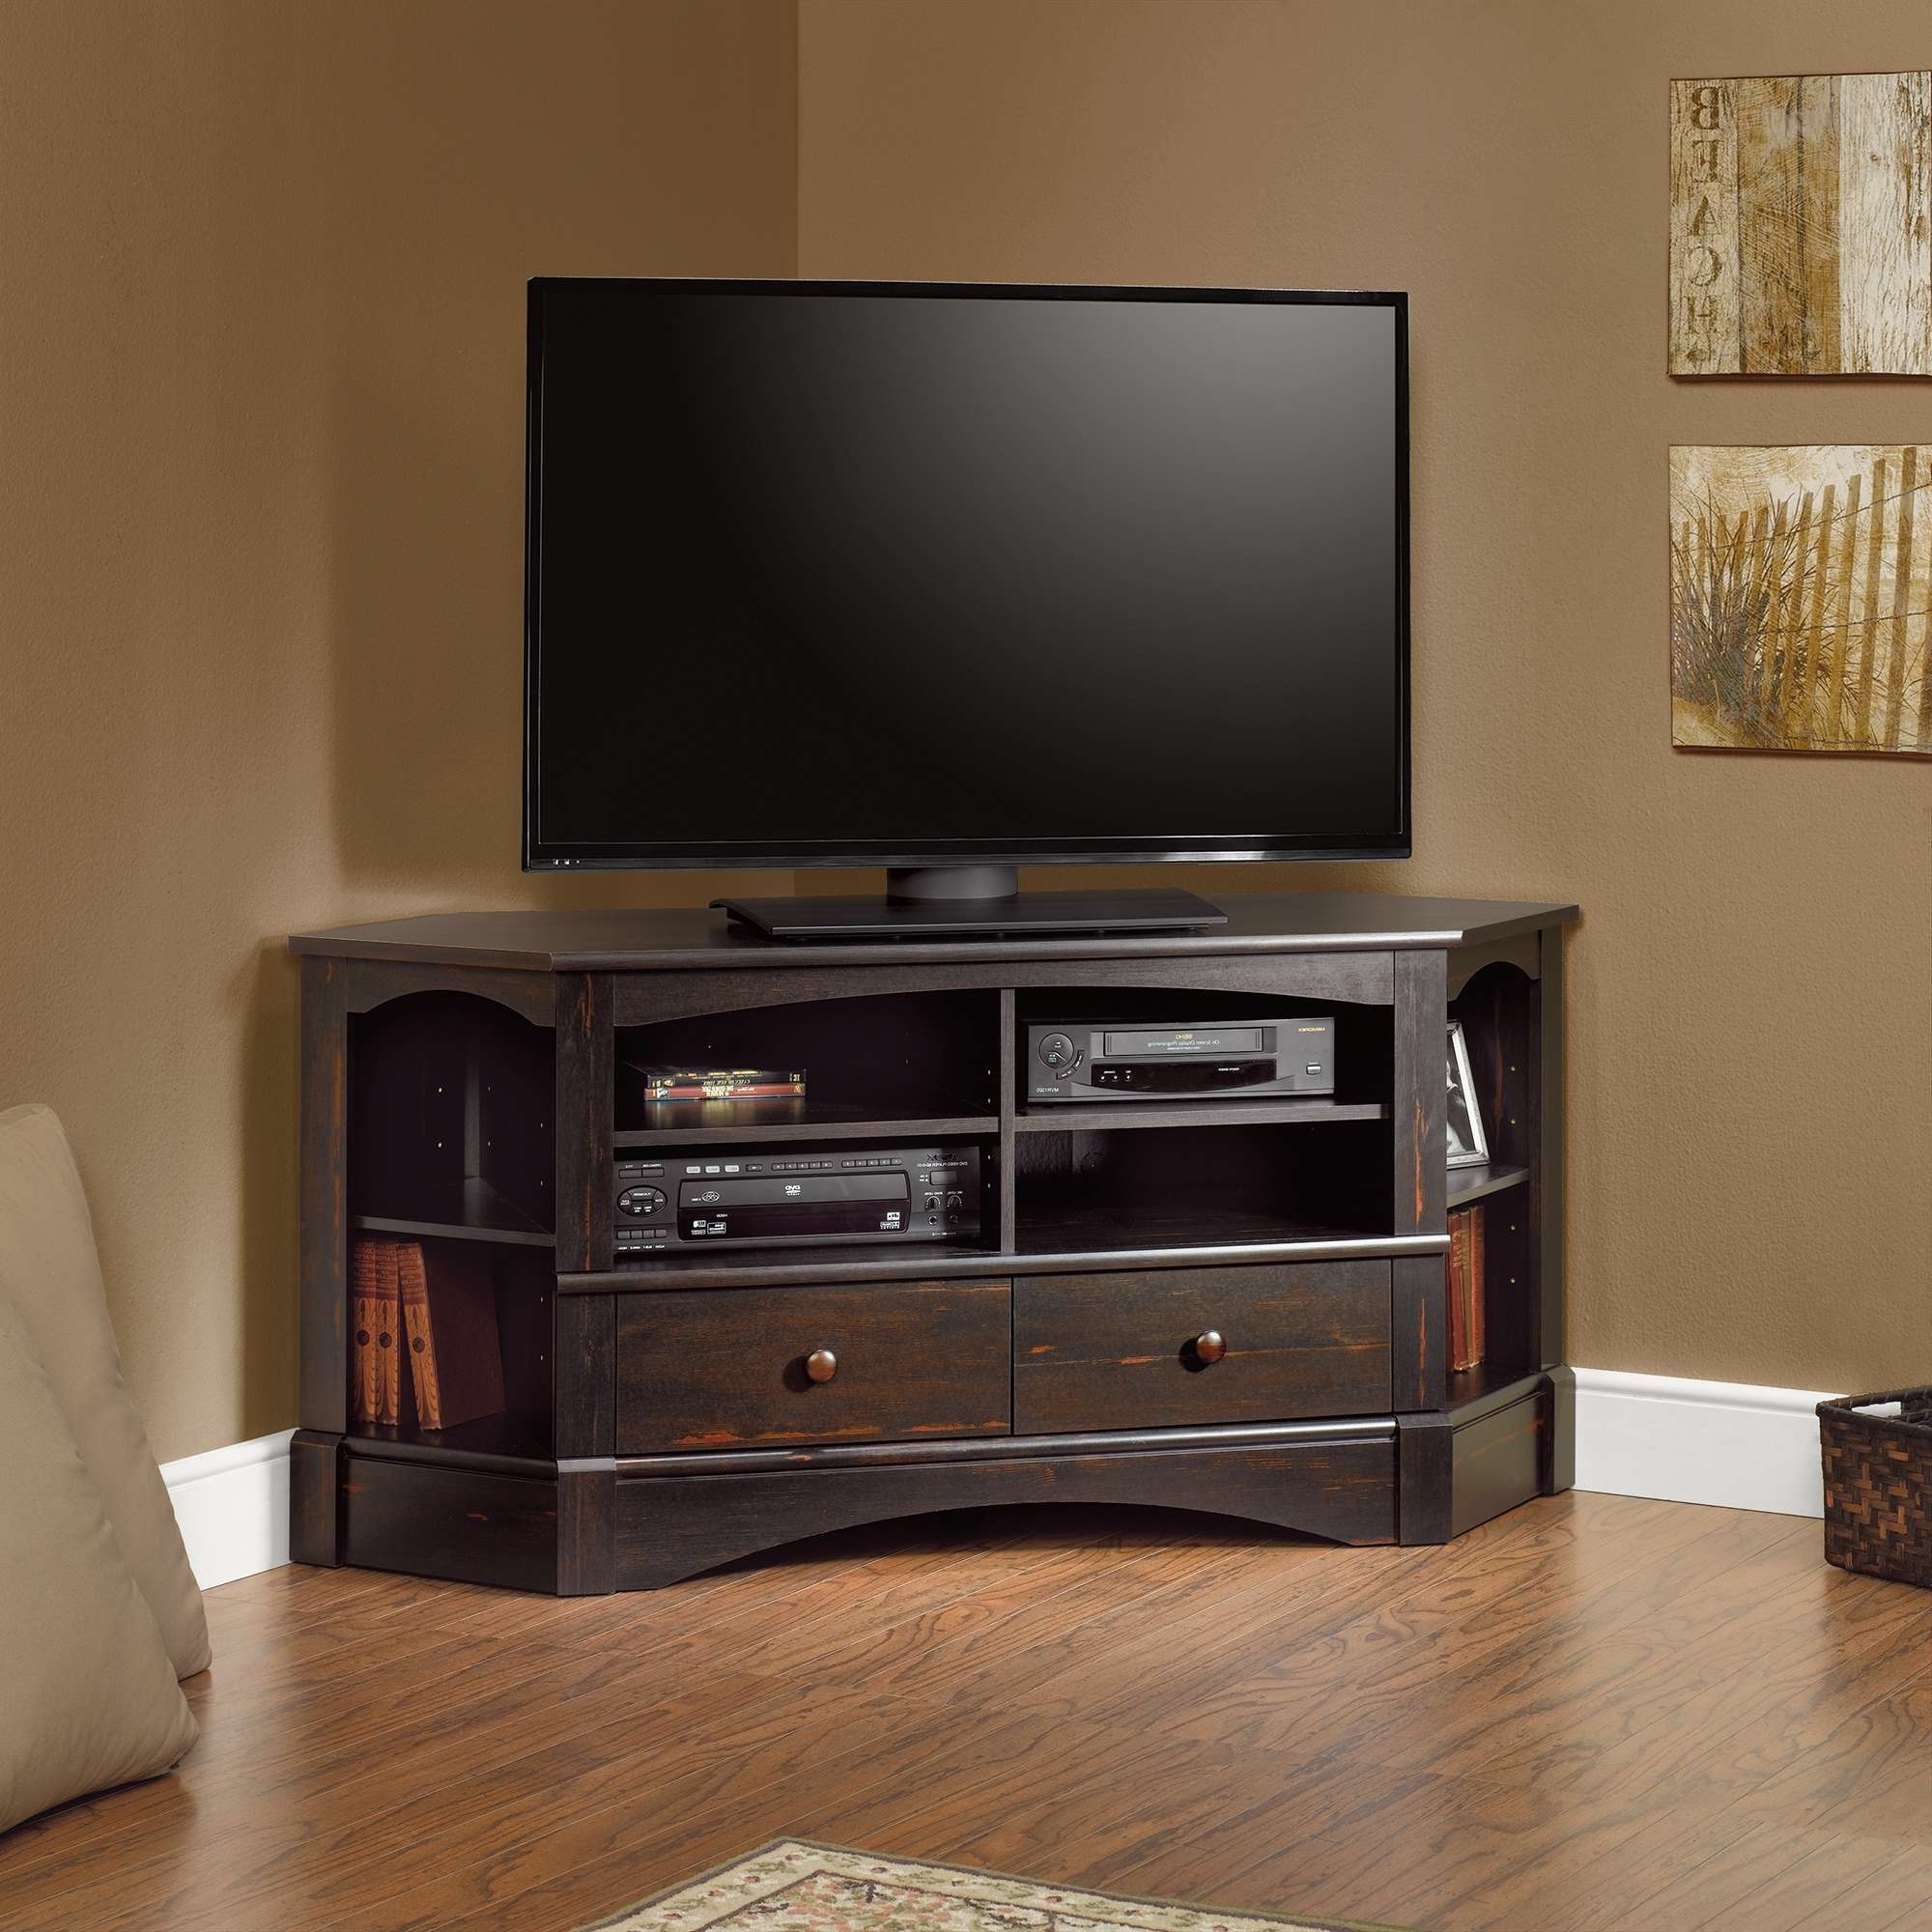 Furniture Rustic Kmart Tv Stands On Marble Flooring With White Pertaining To Corner Oak Tv Stands For Flat Screen (View 5 of 15)